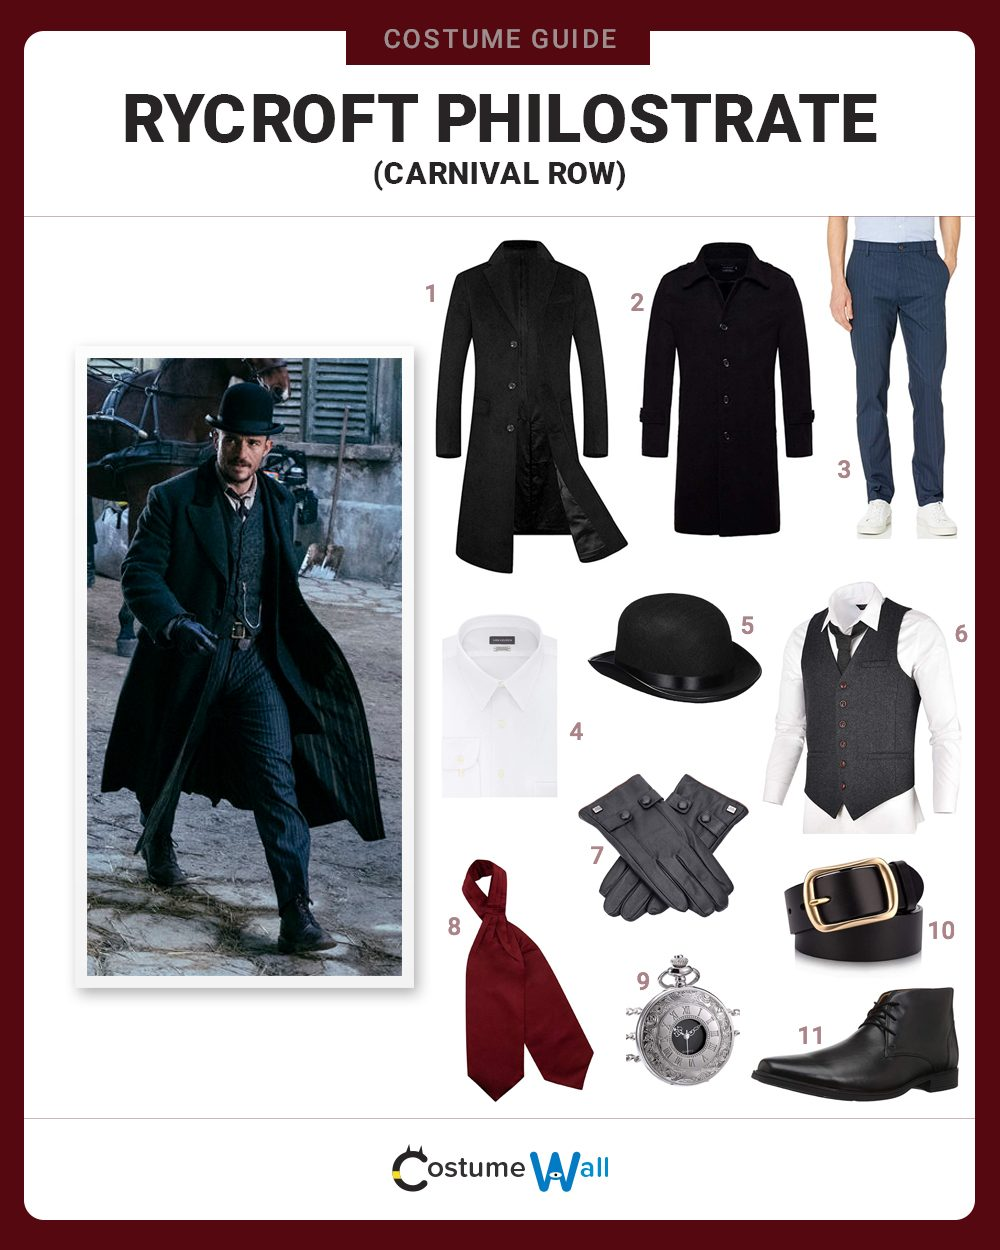 Rycroft Philostrate Costume Guide